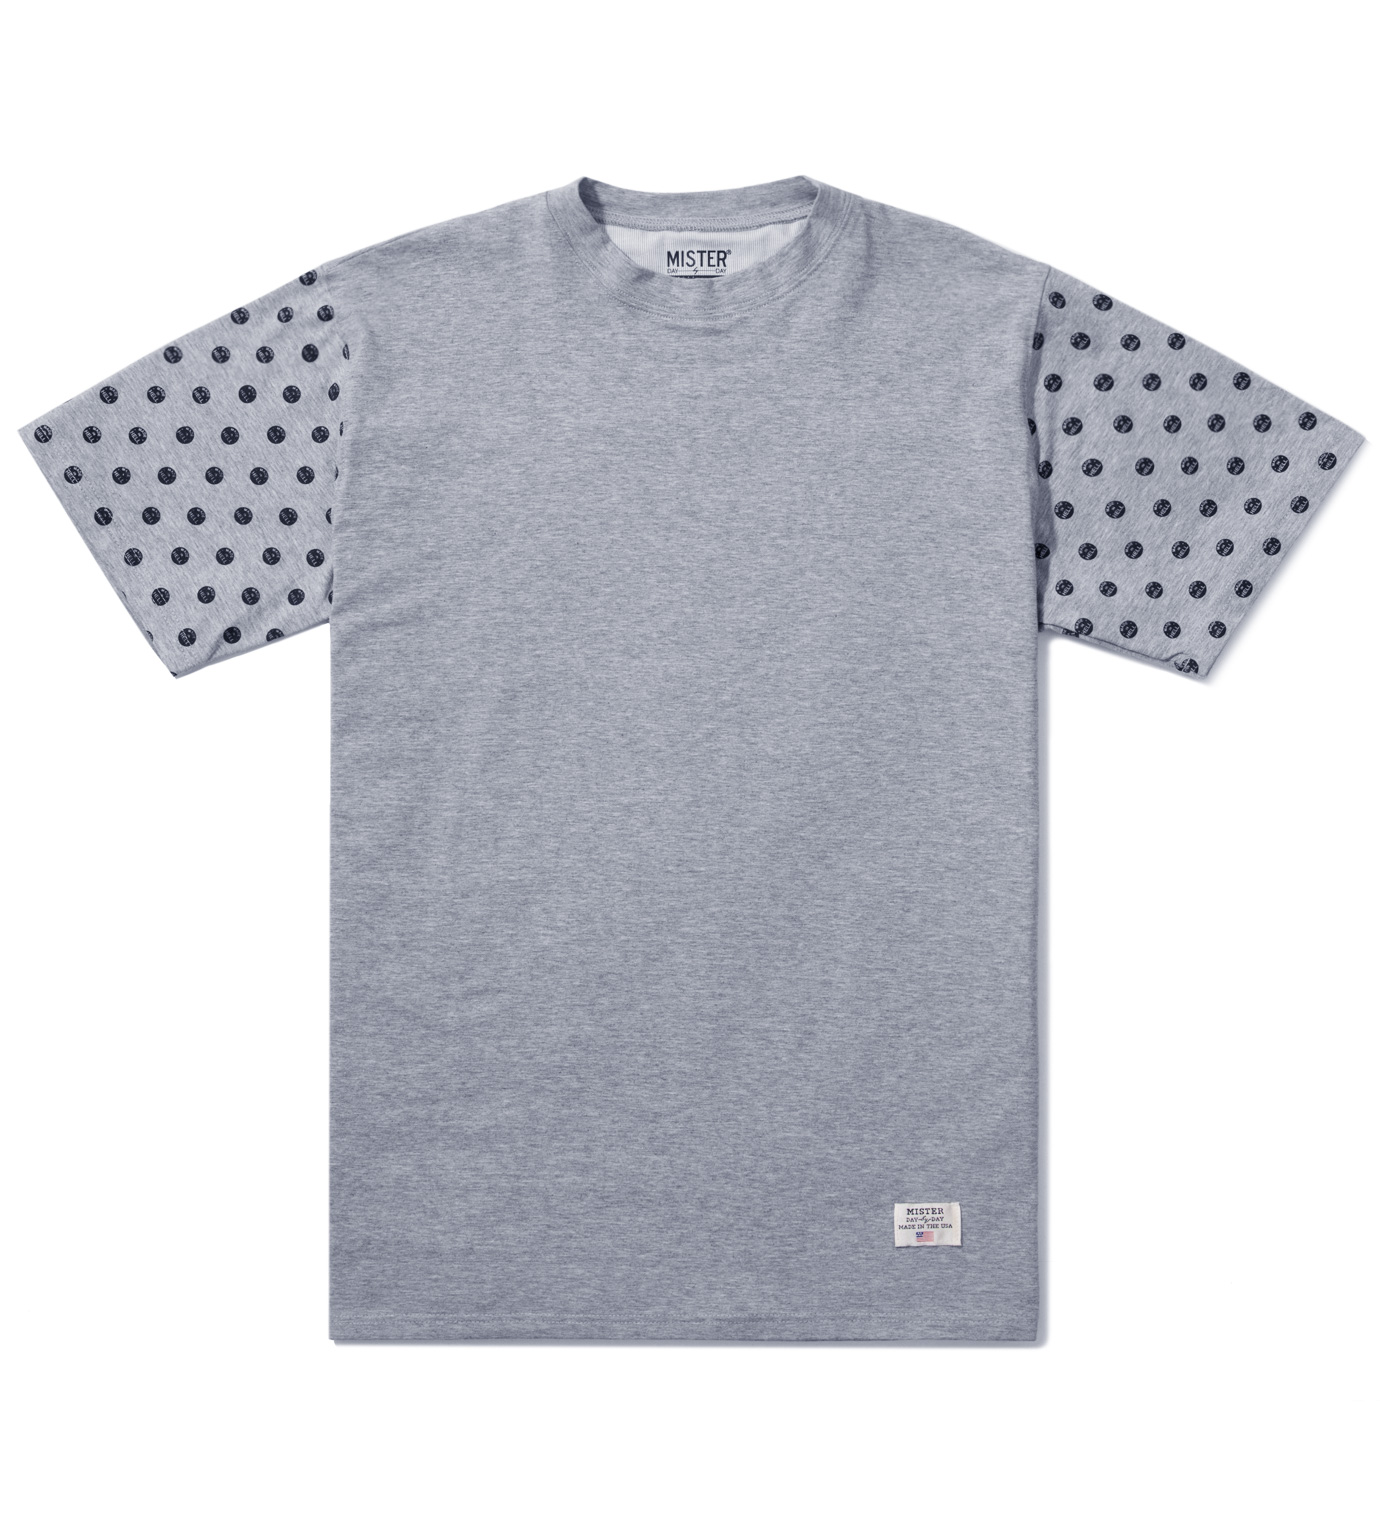 Mister Grey/Black Print Mr. Dots Immediate T-Shirt